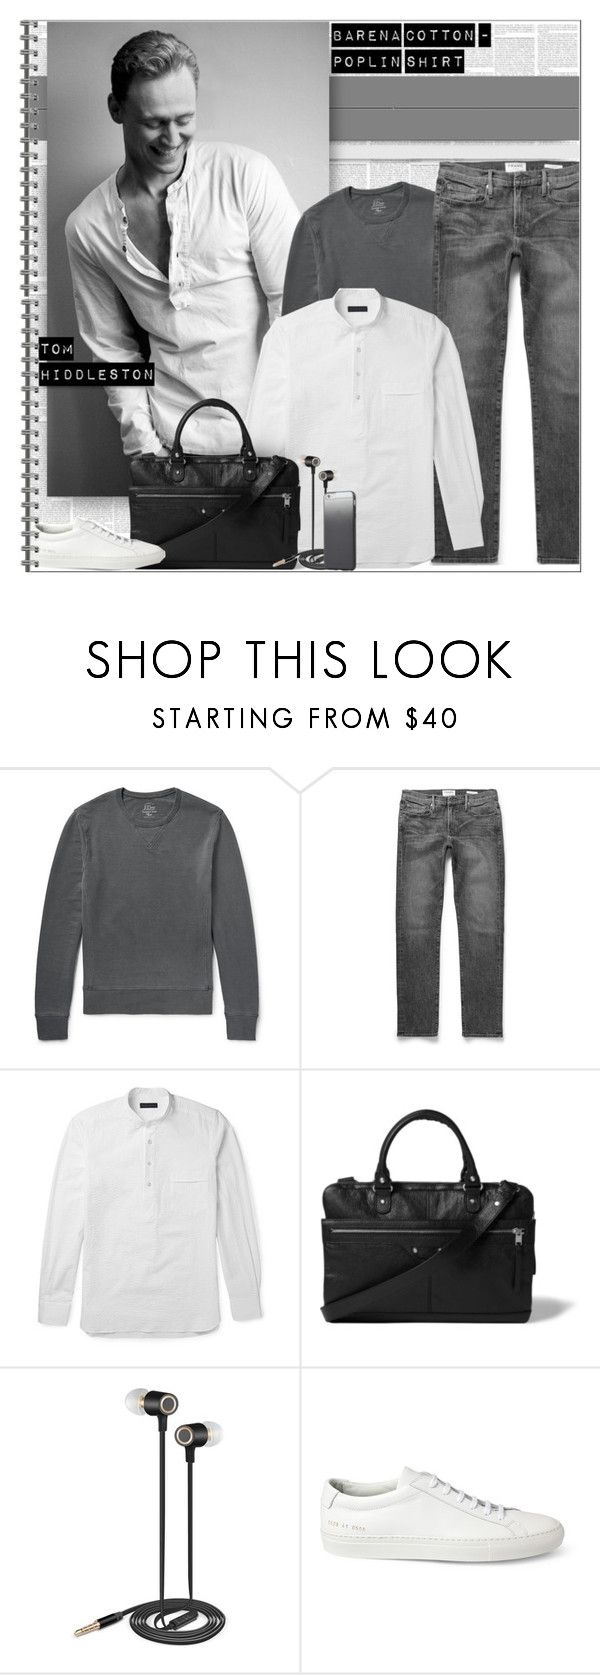 """White Shirt - Tom Hiddleston"" by alves-nogueira ❤ liked on Polyvore featuring J.Crew, Thom Sweeney, Trilogy, Balenciaga, Nicole Miller, Common Projects, Tavik Swimwear, men's fashion and menswear"